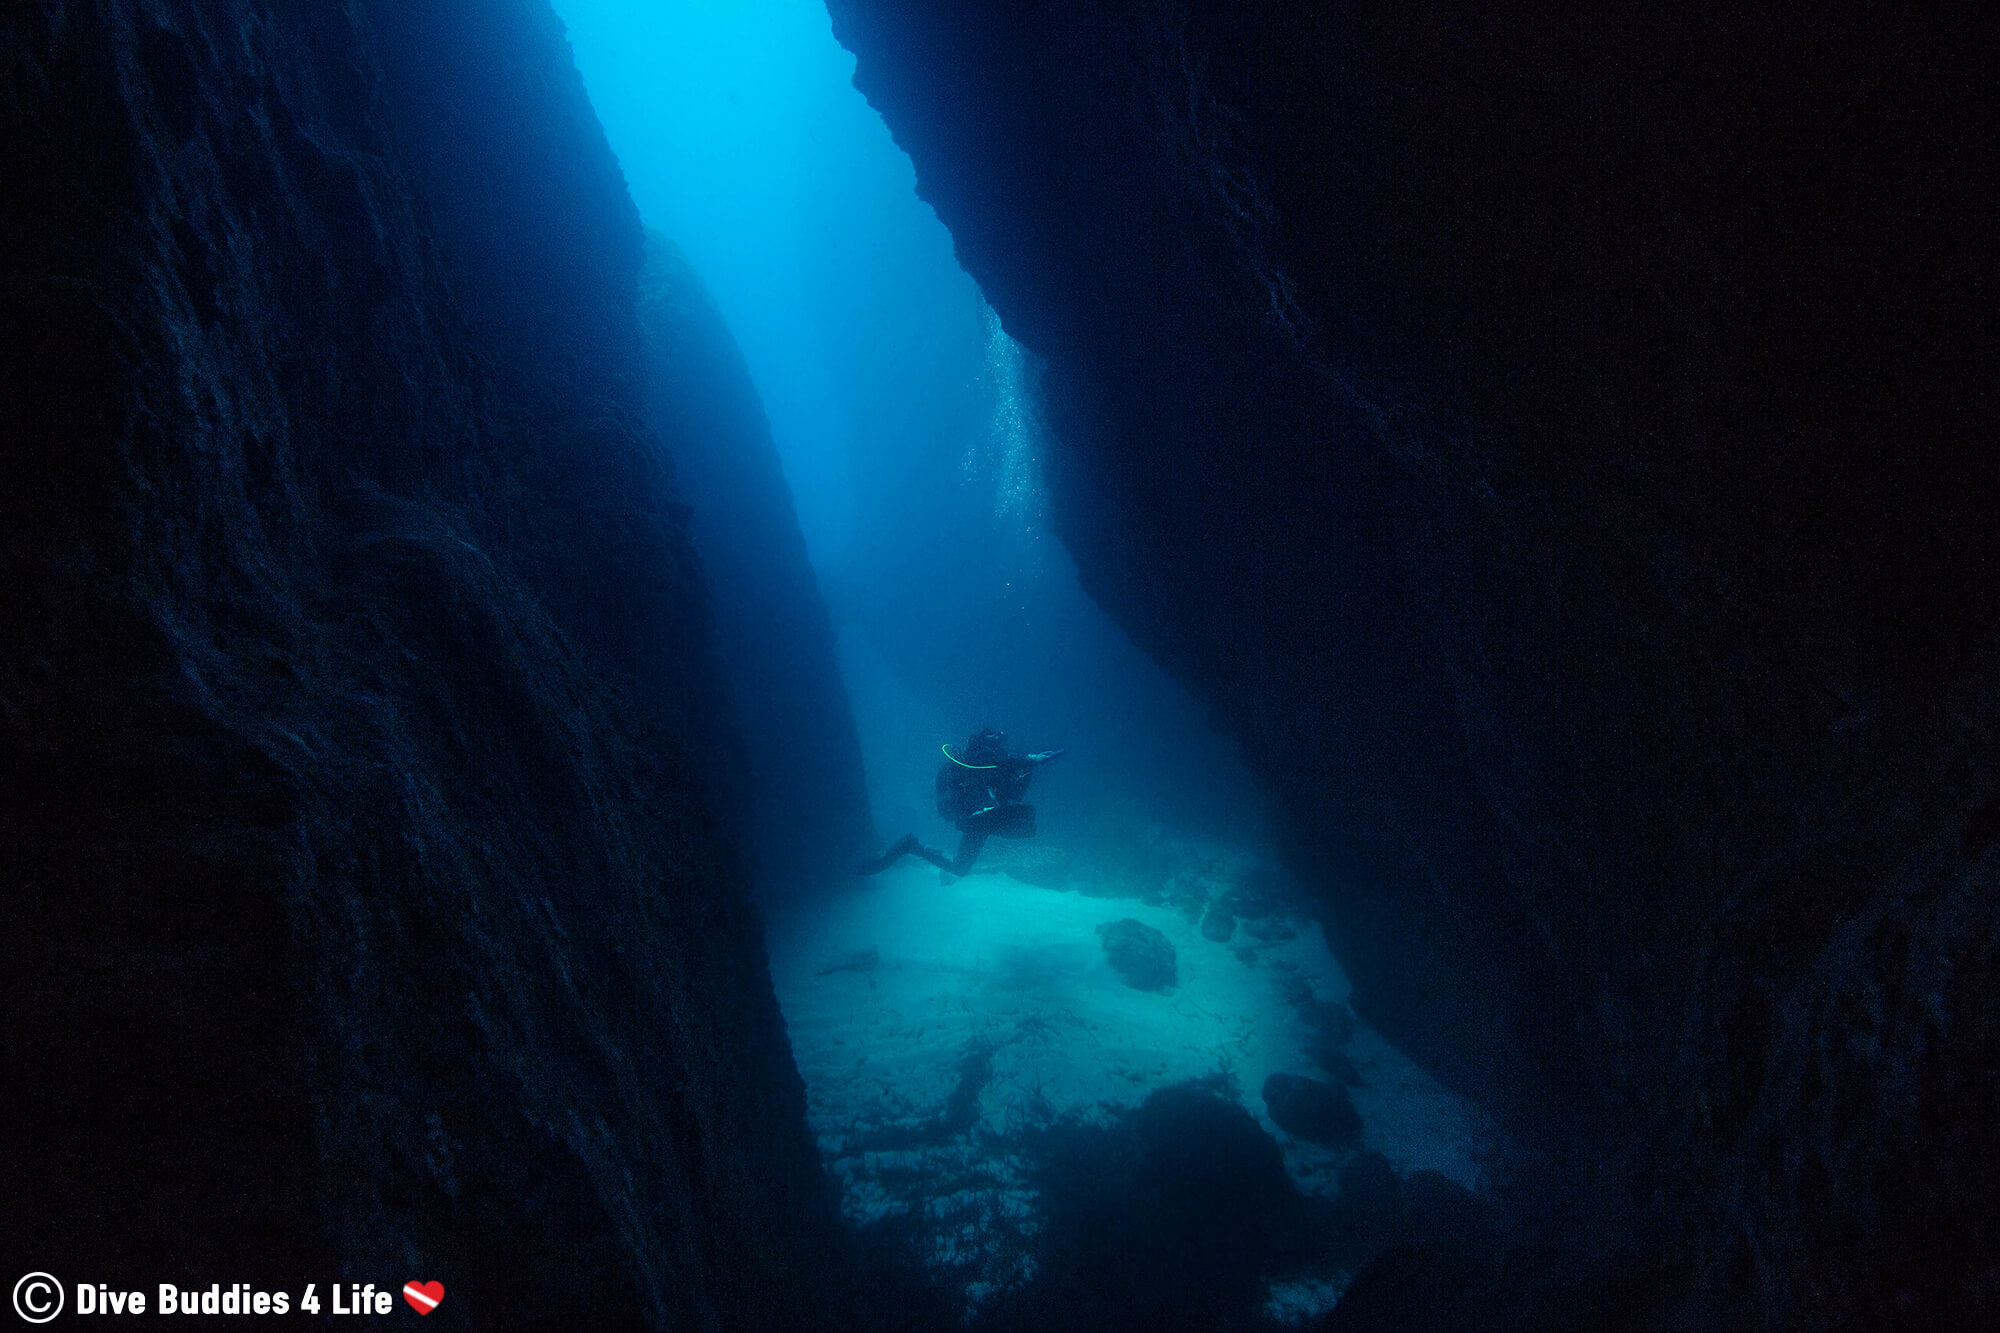 A Diver Scuba Diving Between Two Rock Walls Into A Cave On Zakynthos Island, Greece